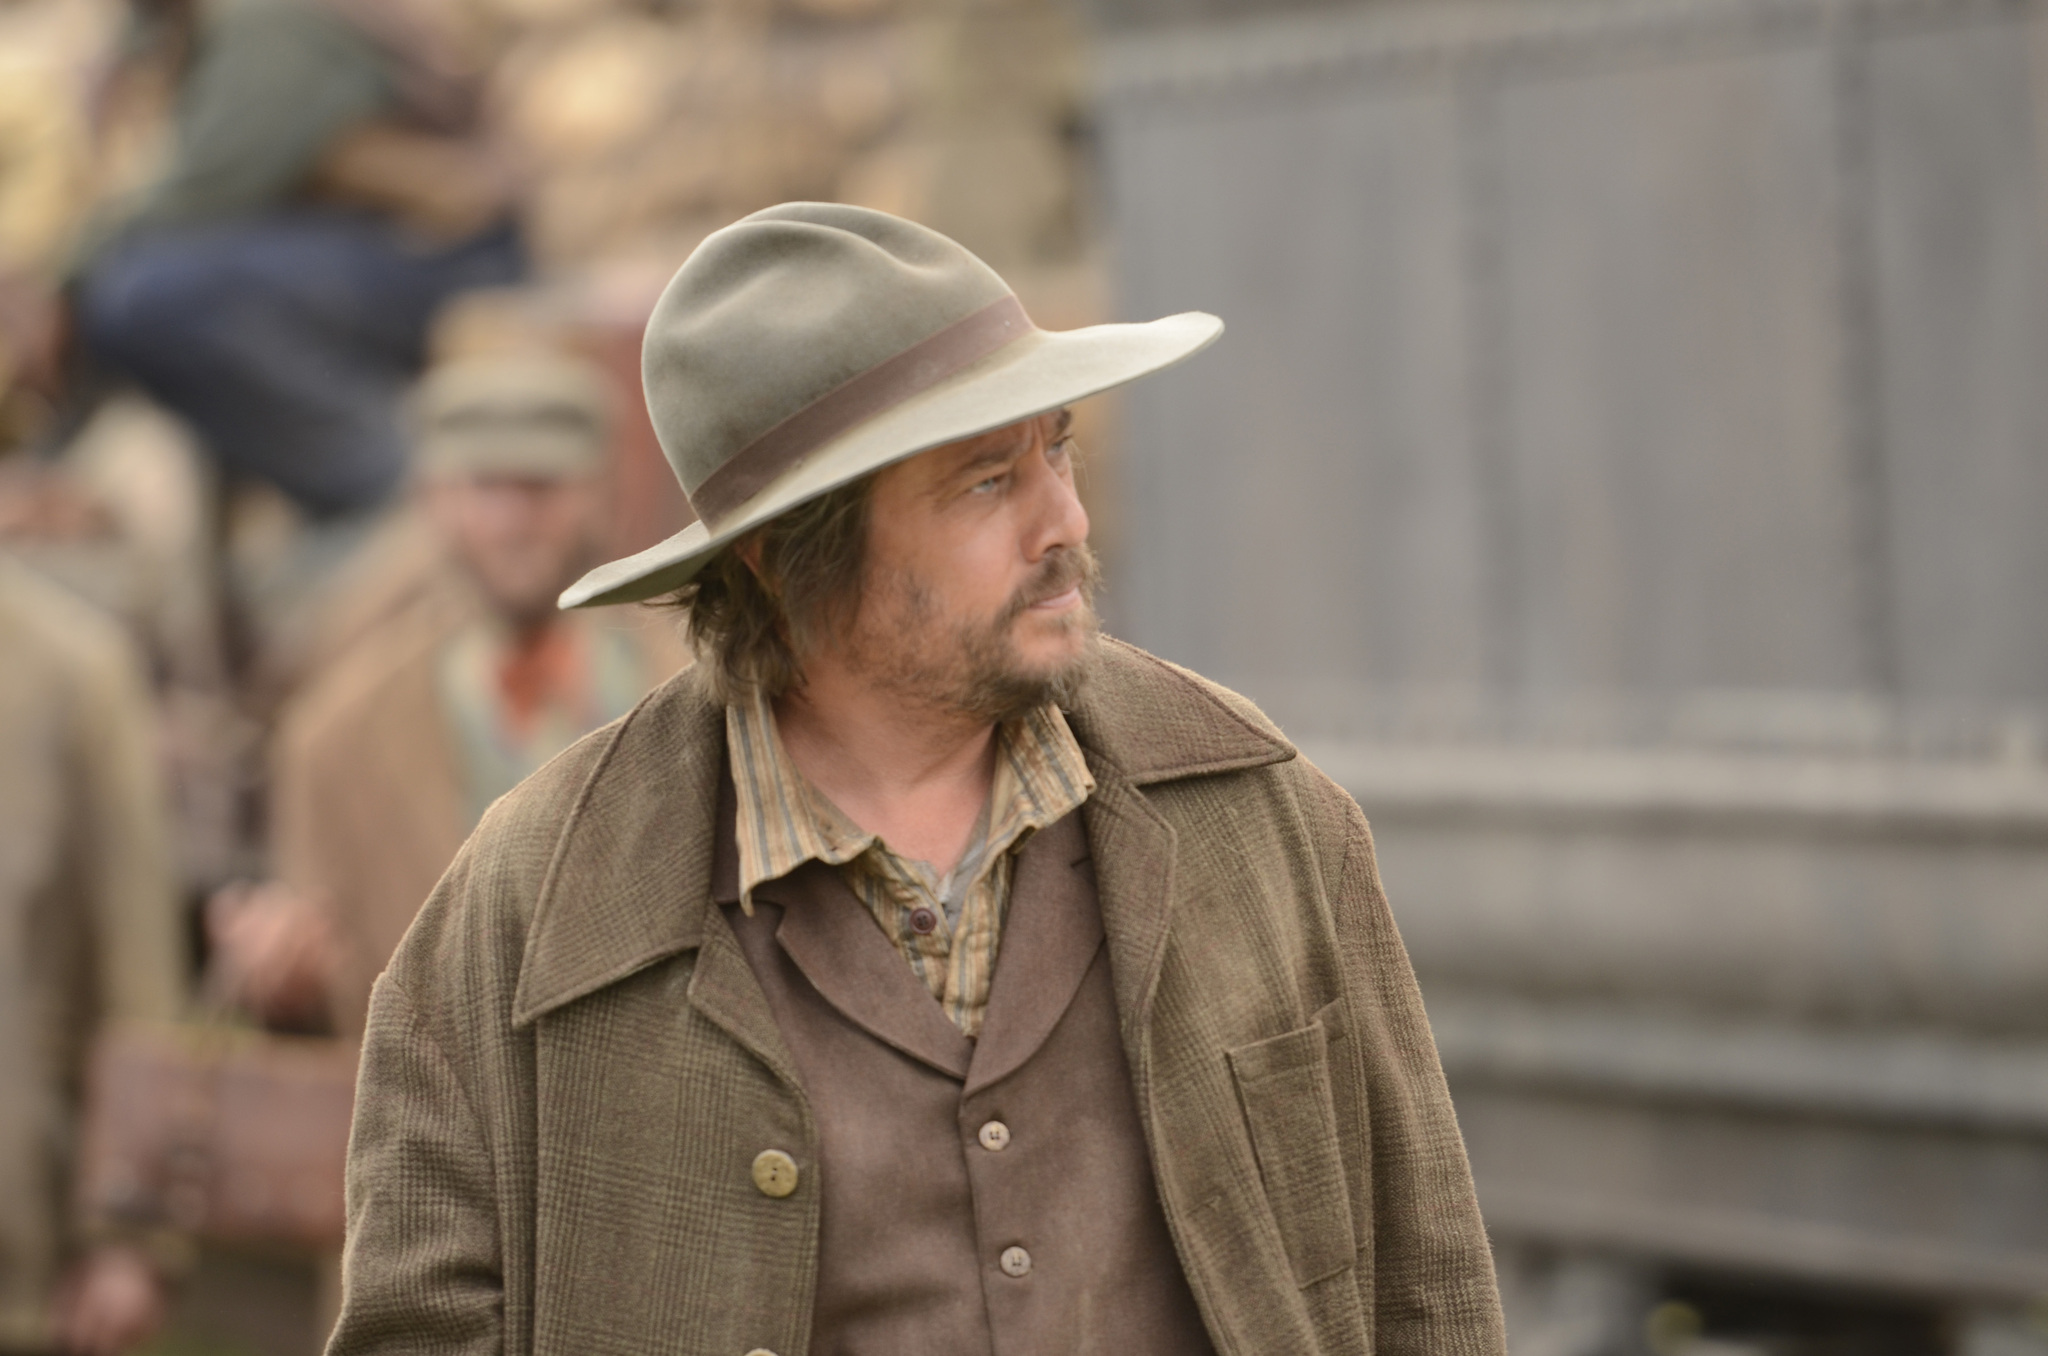 Duncan Ollerenshaw in Hell on Wheels (2011)